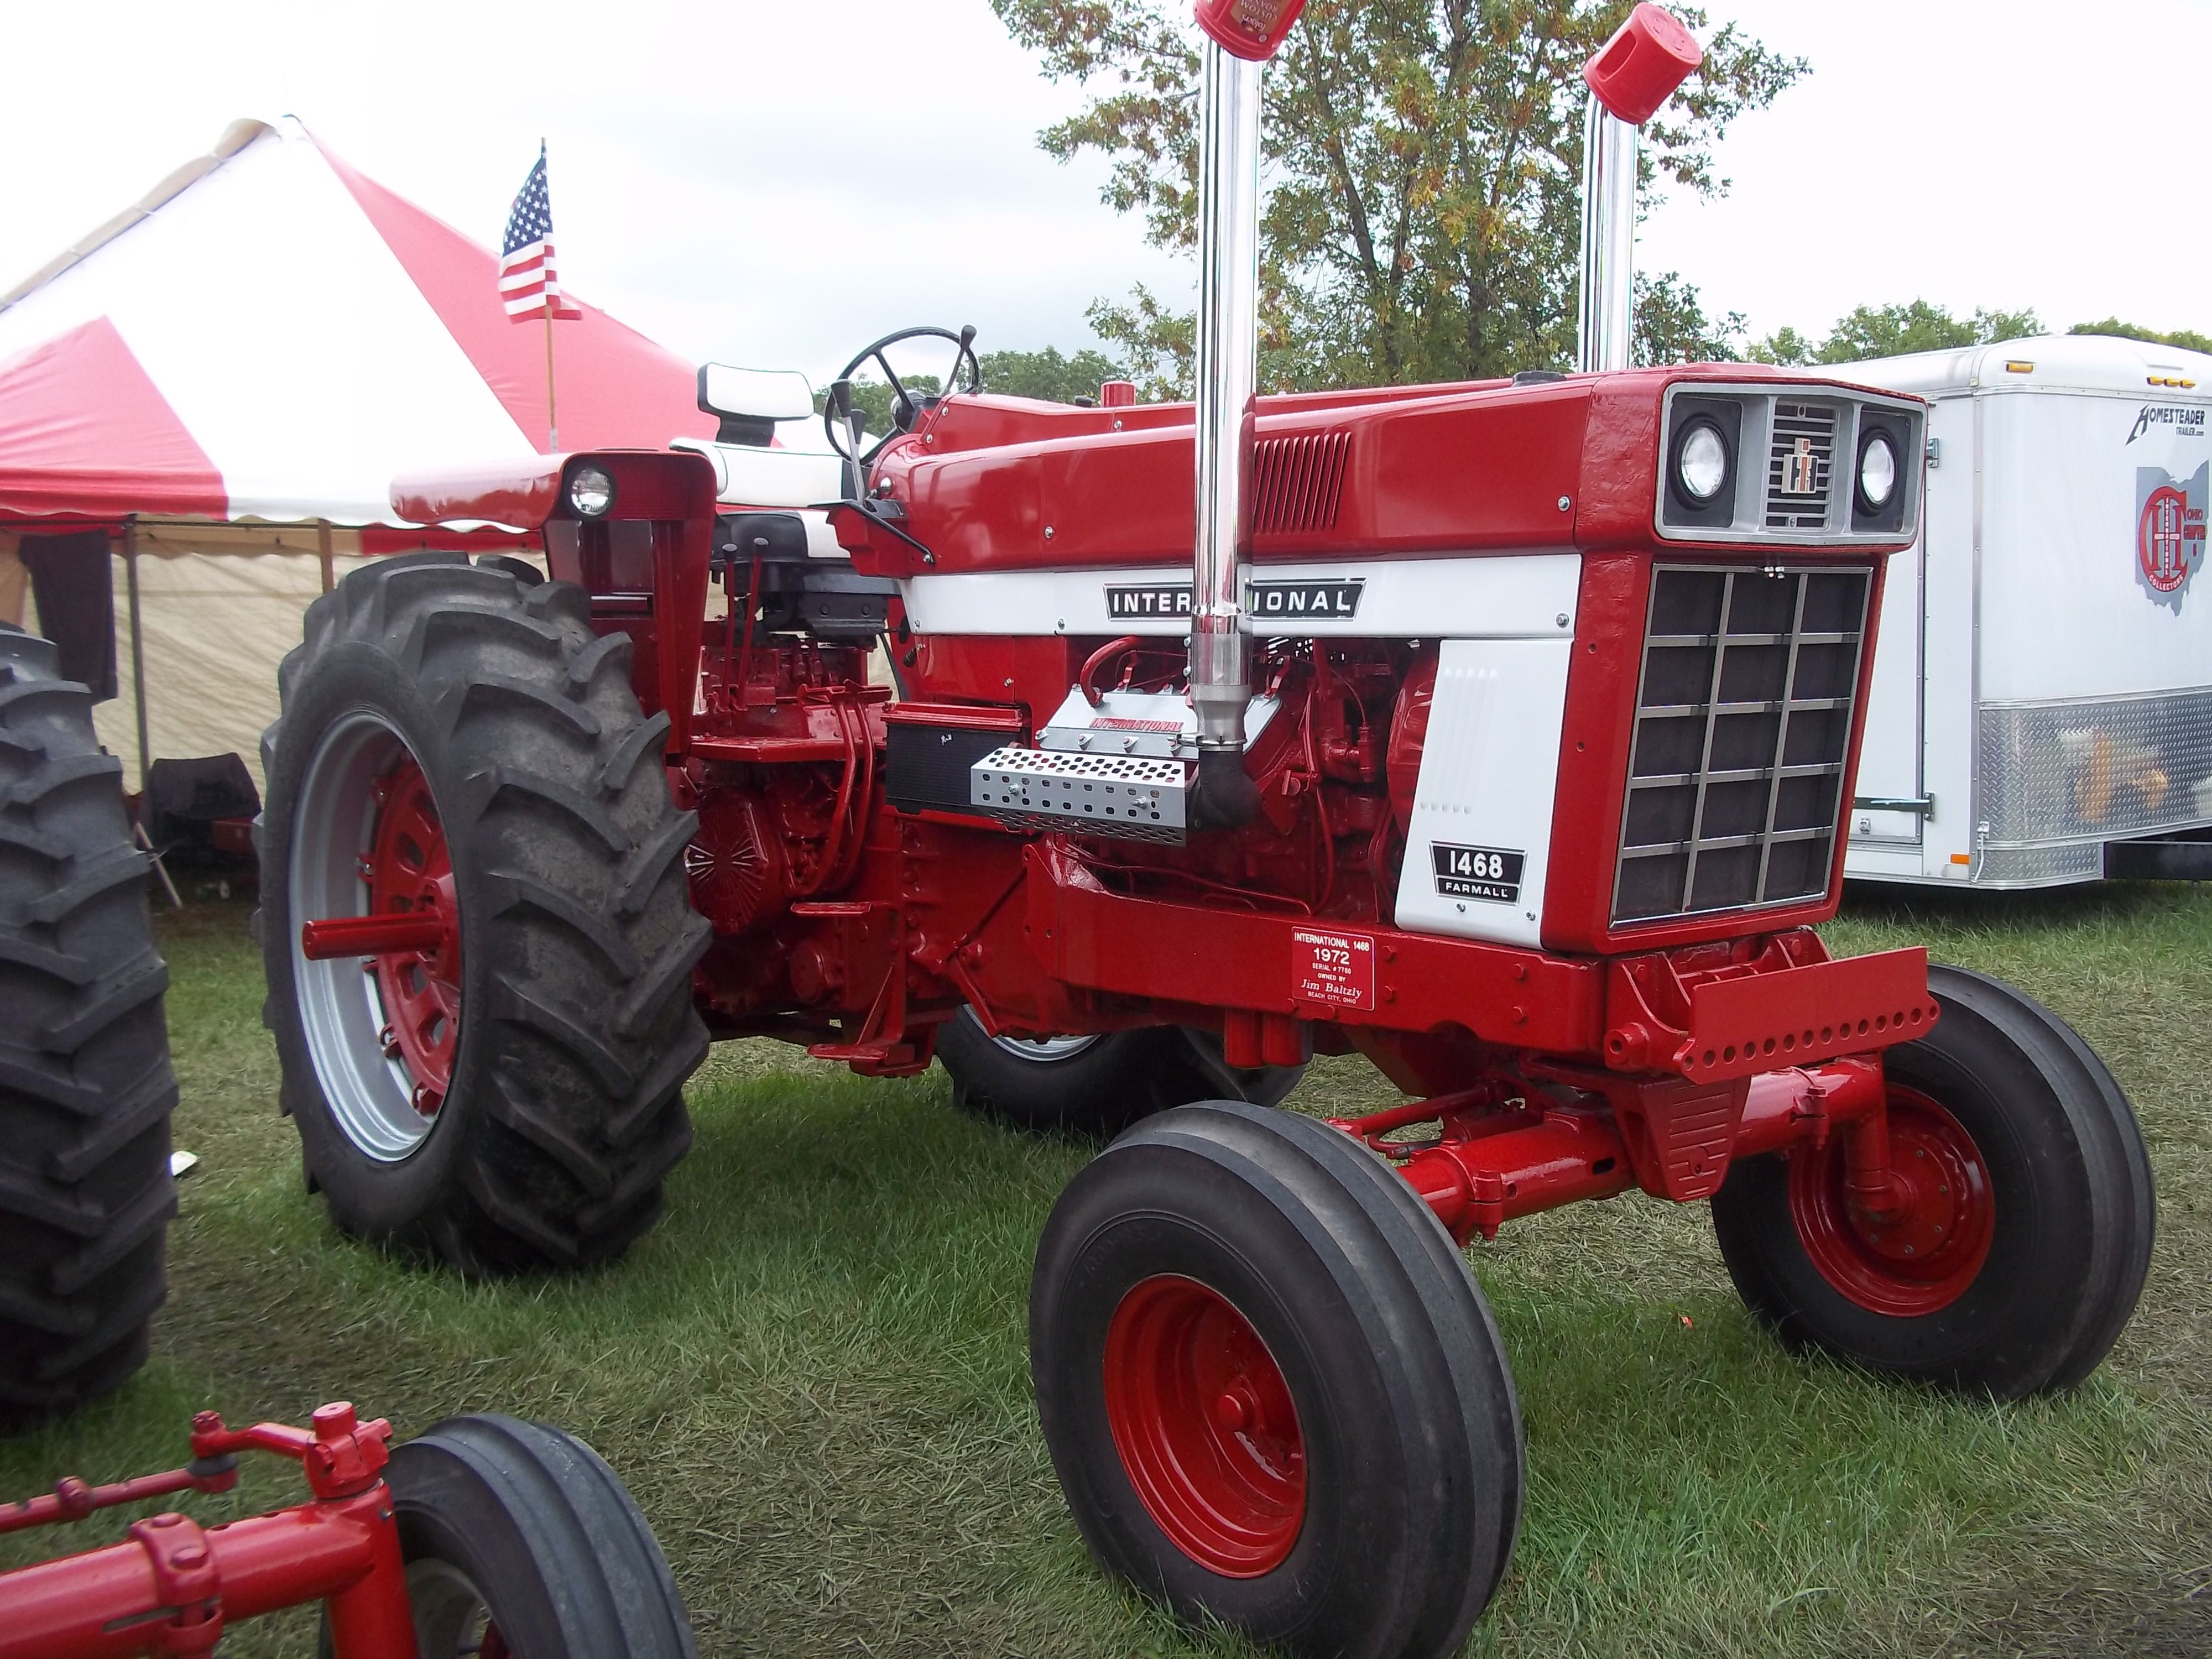 145hp 1468.These old IH 8 cylinder tractors are collector items